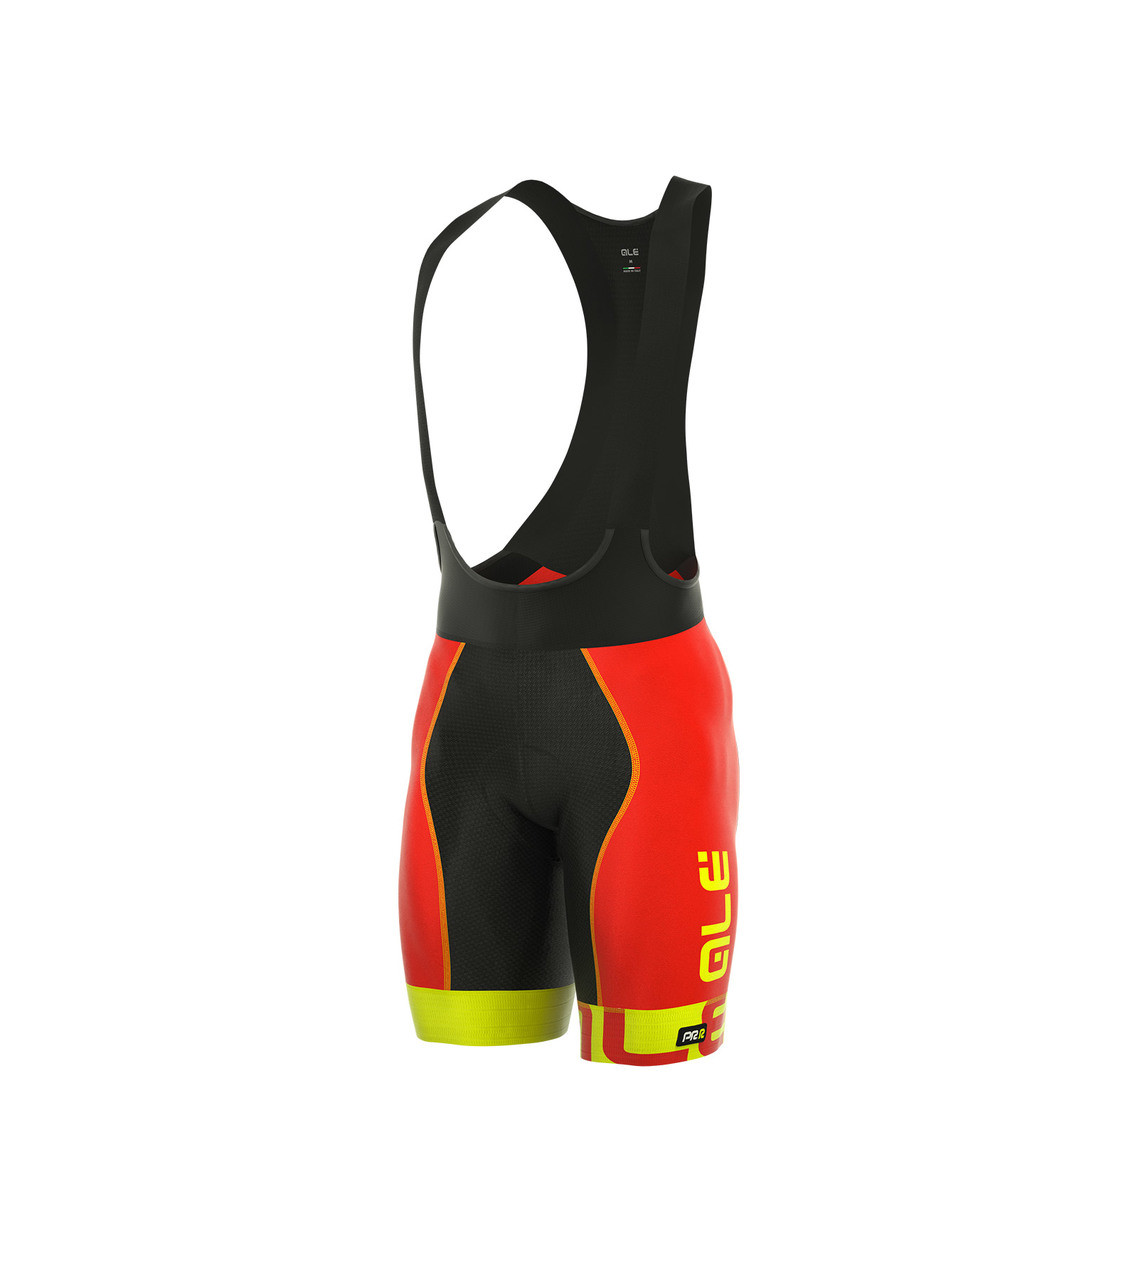 ALE Arcobaleno Red Yellow Bib Shorts Side